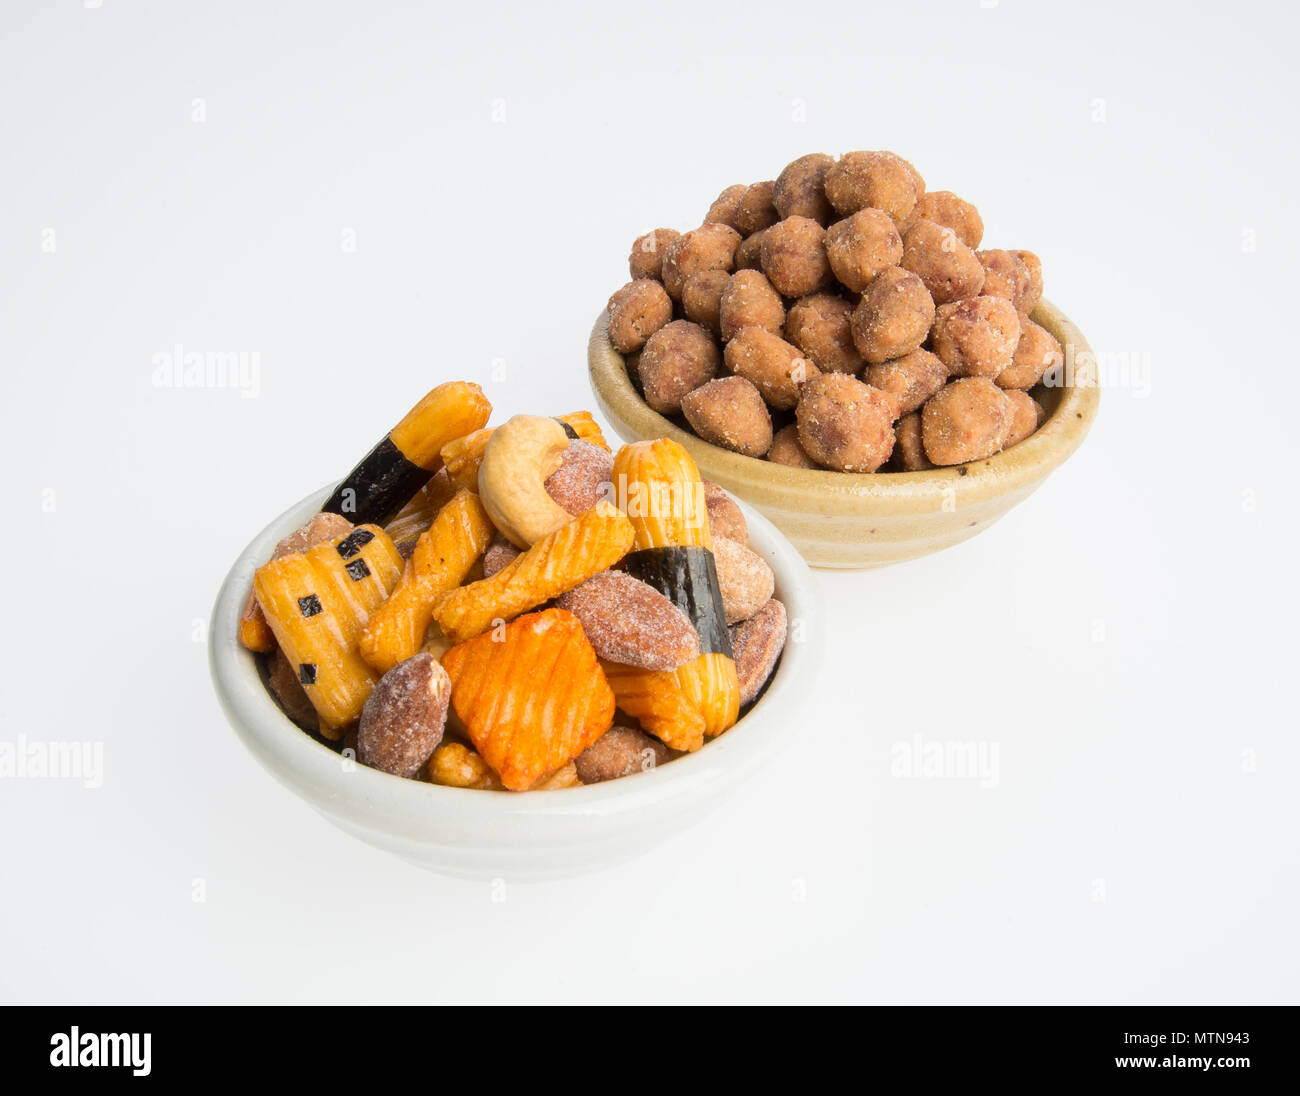 nuts or mix peanuts on a background - Stock Image